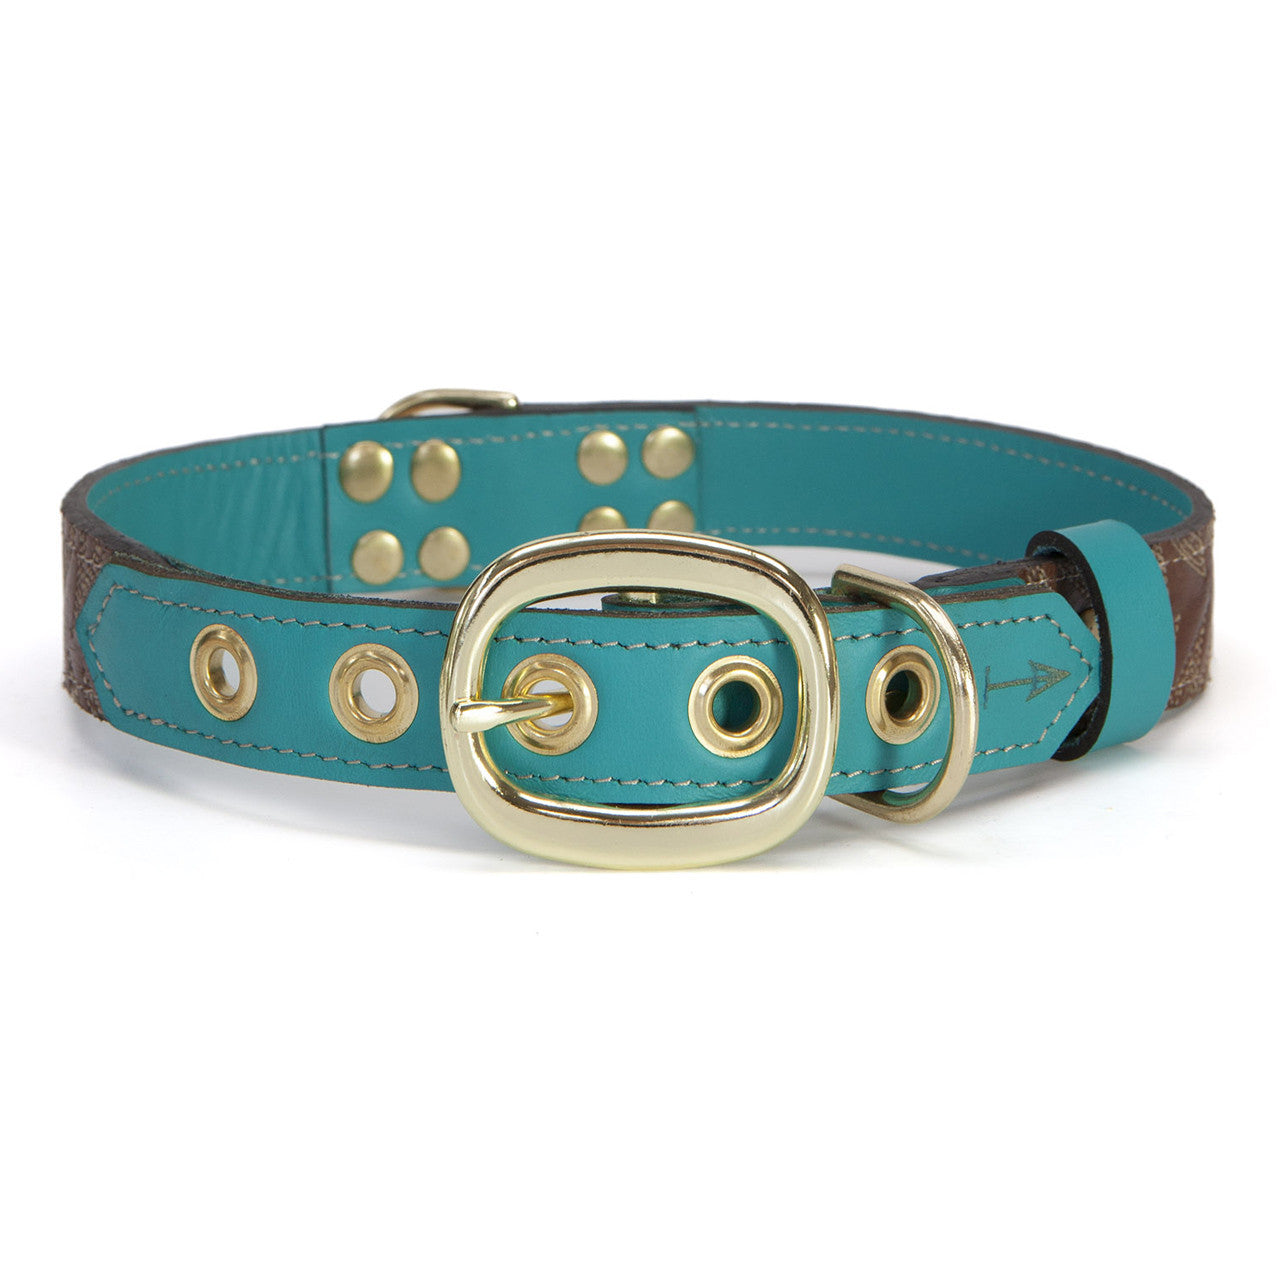 Turquoise Dog Collar with Dark Brown Leather + White Stitching (back view)